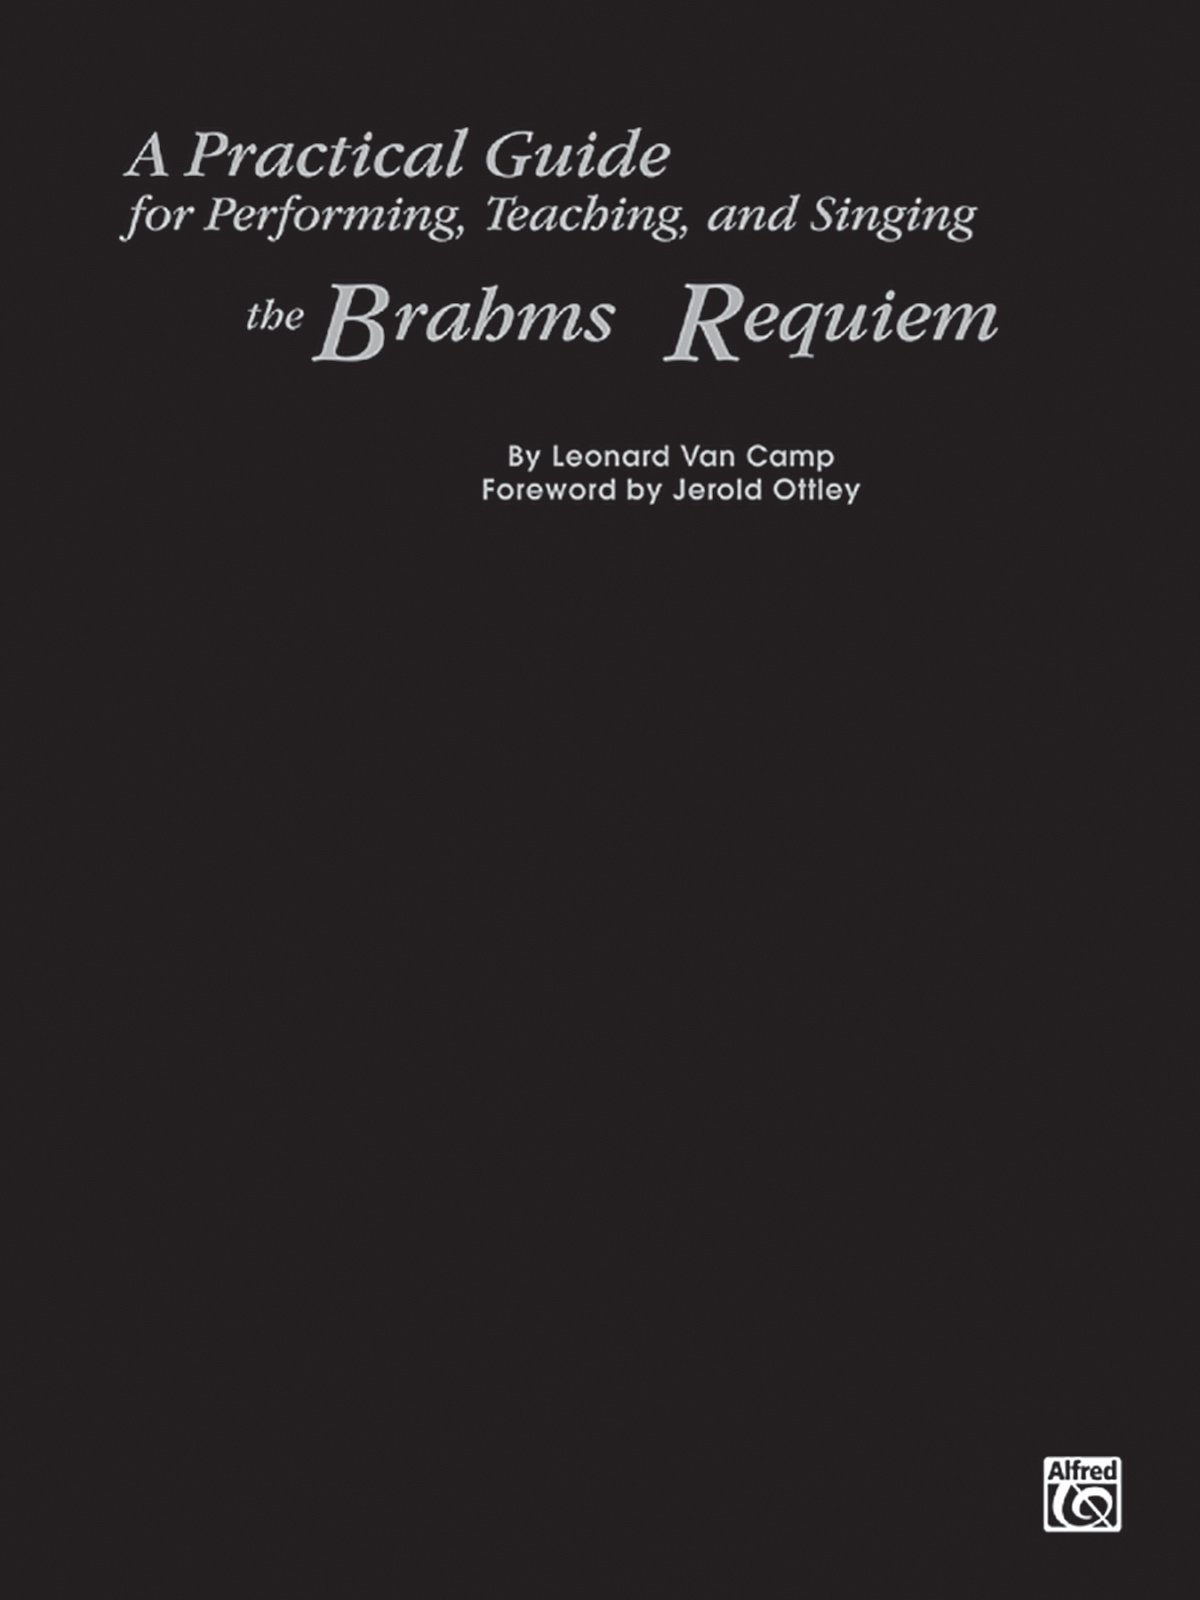 Download A Practical Guide for Performing, Teaching, and Singing the Brahms Requiem ebook